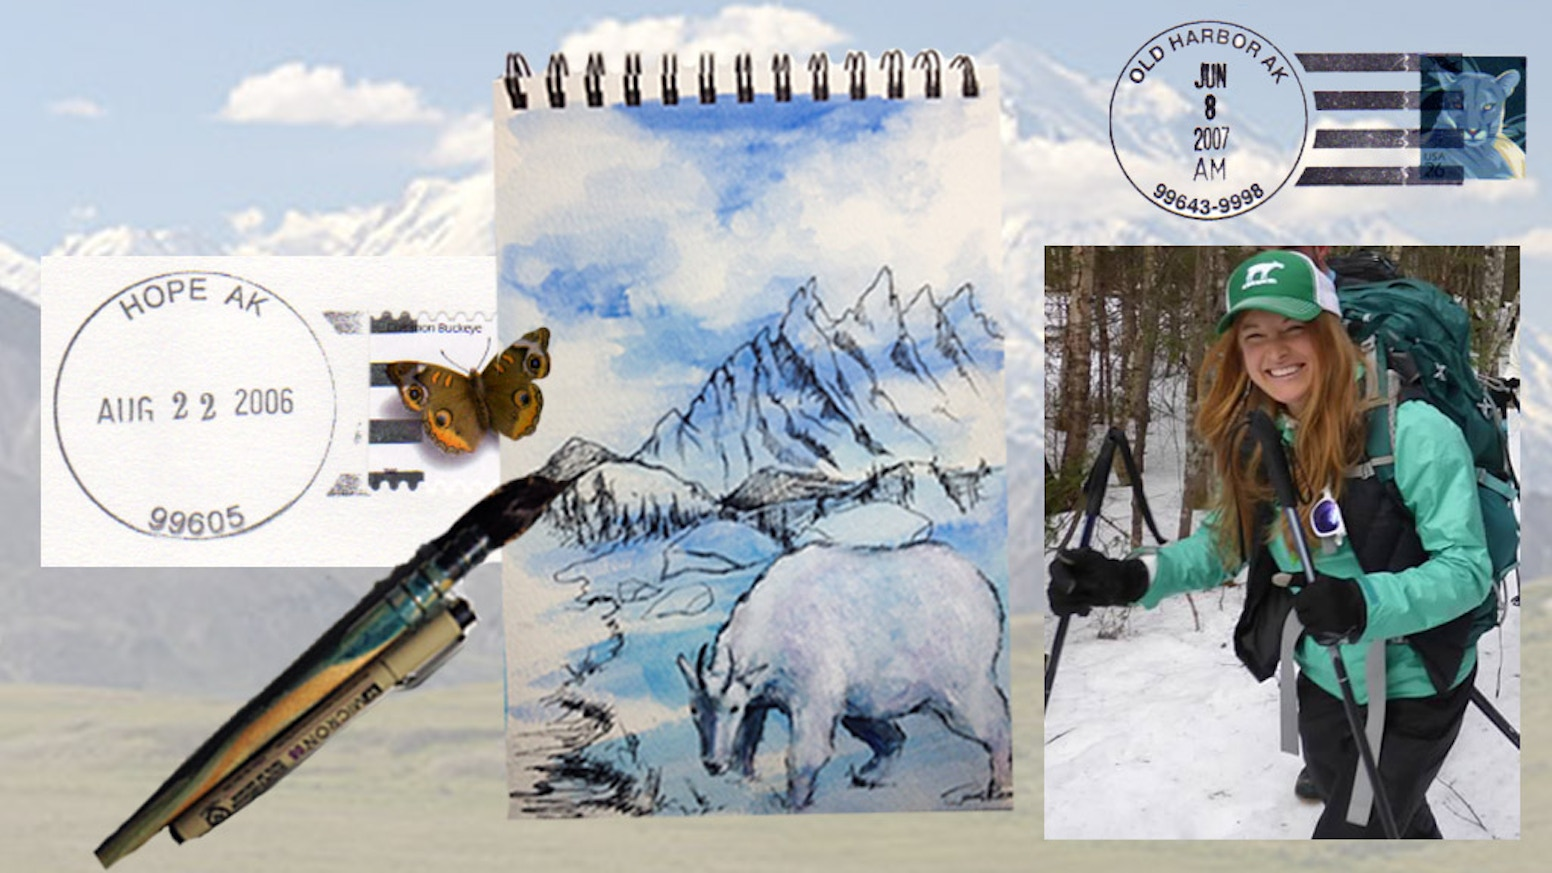 Be a part of my dream exploring Alaska and making art! You'll get an original painting; I'll get to share my passion for nature w/ you!